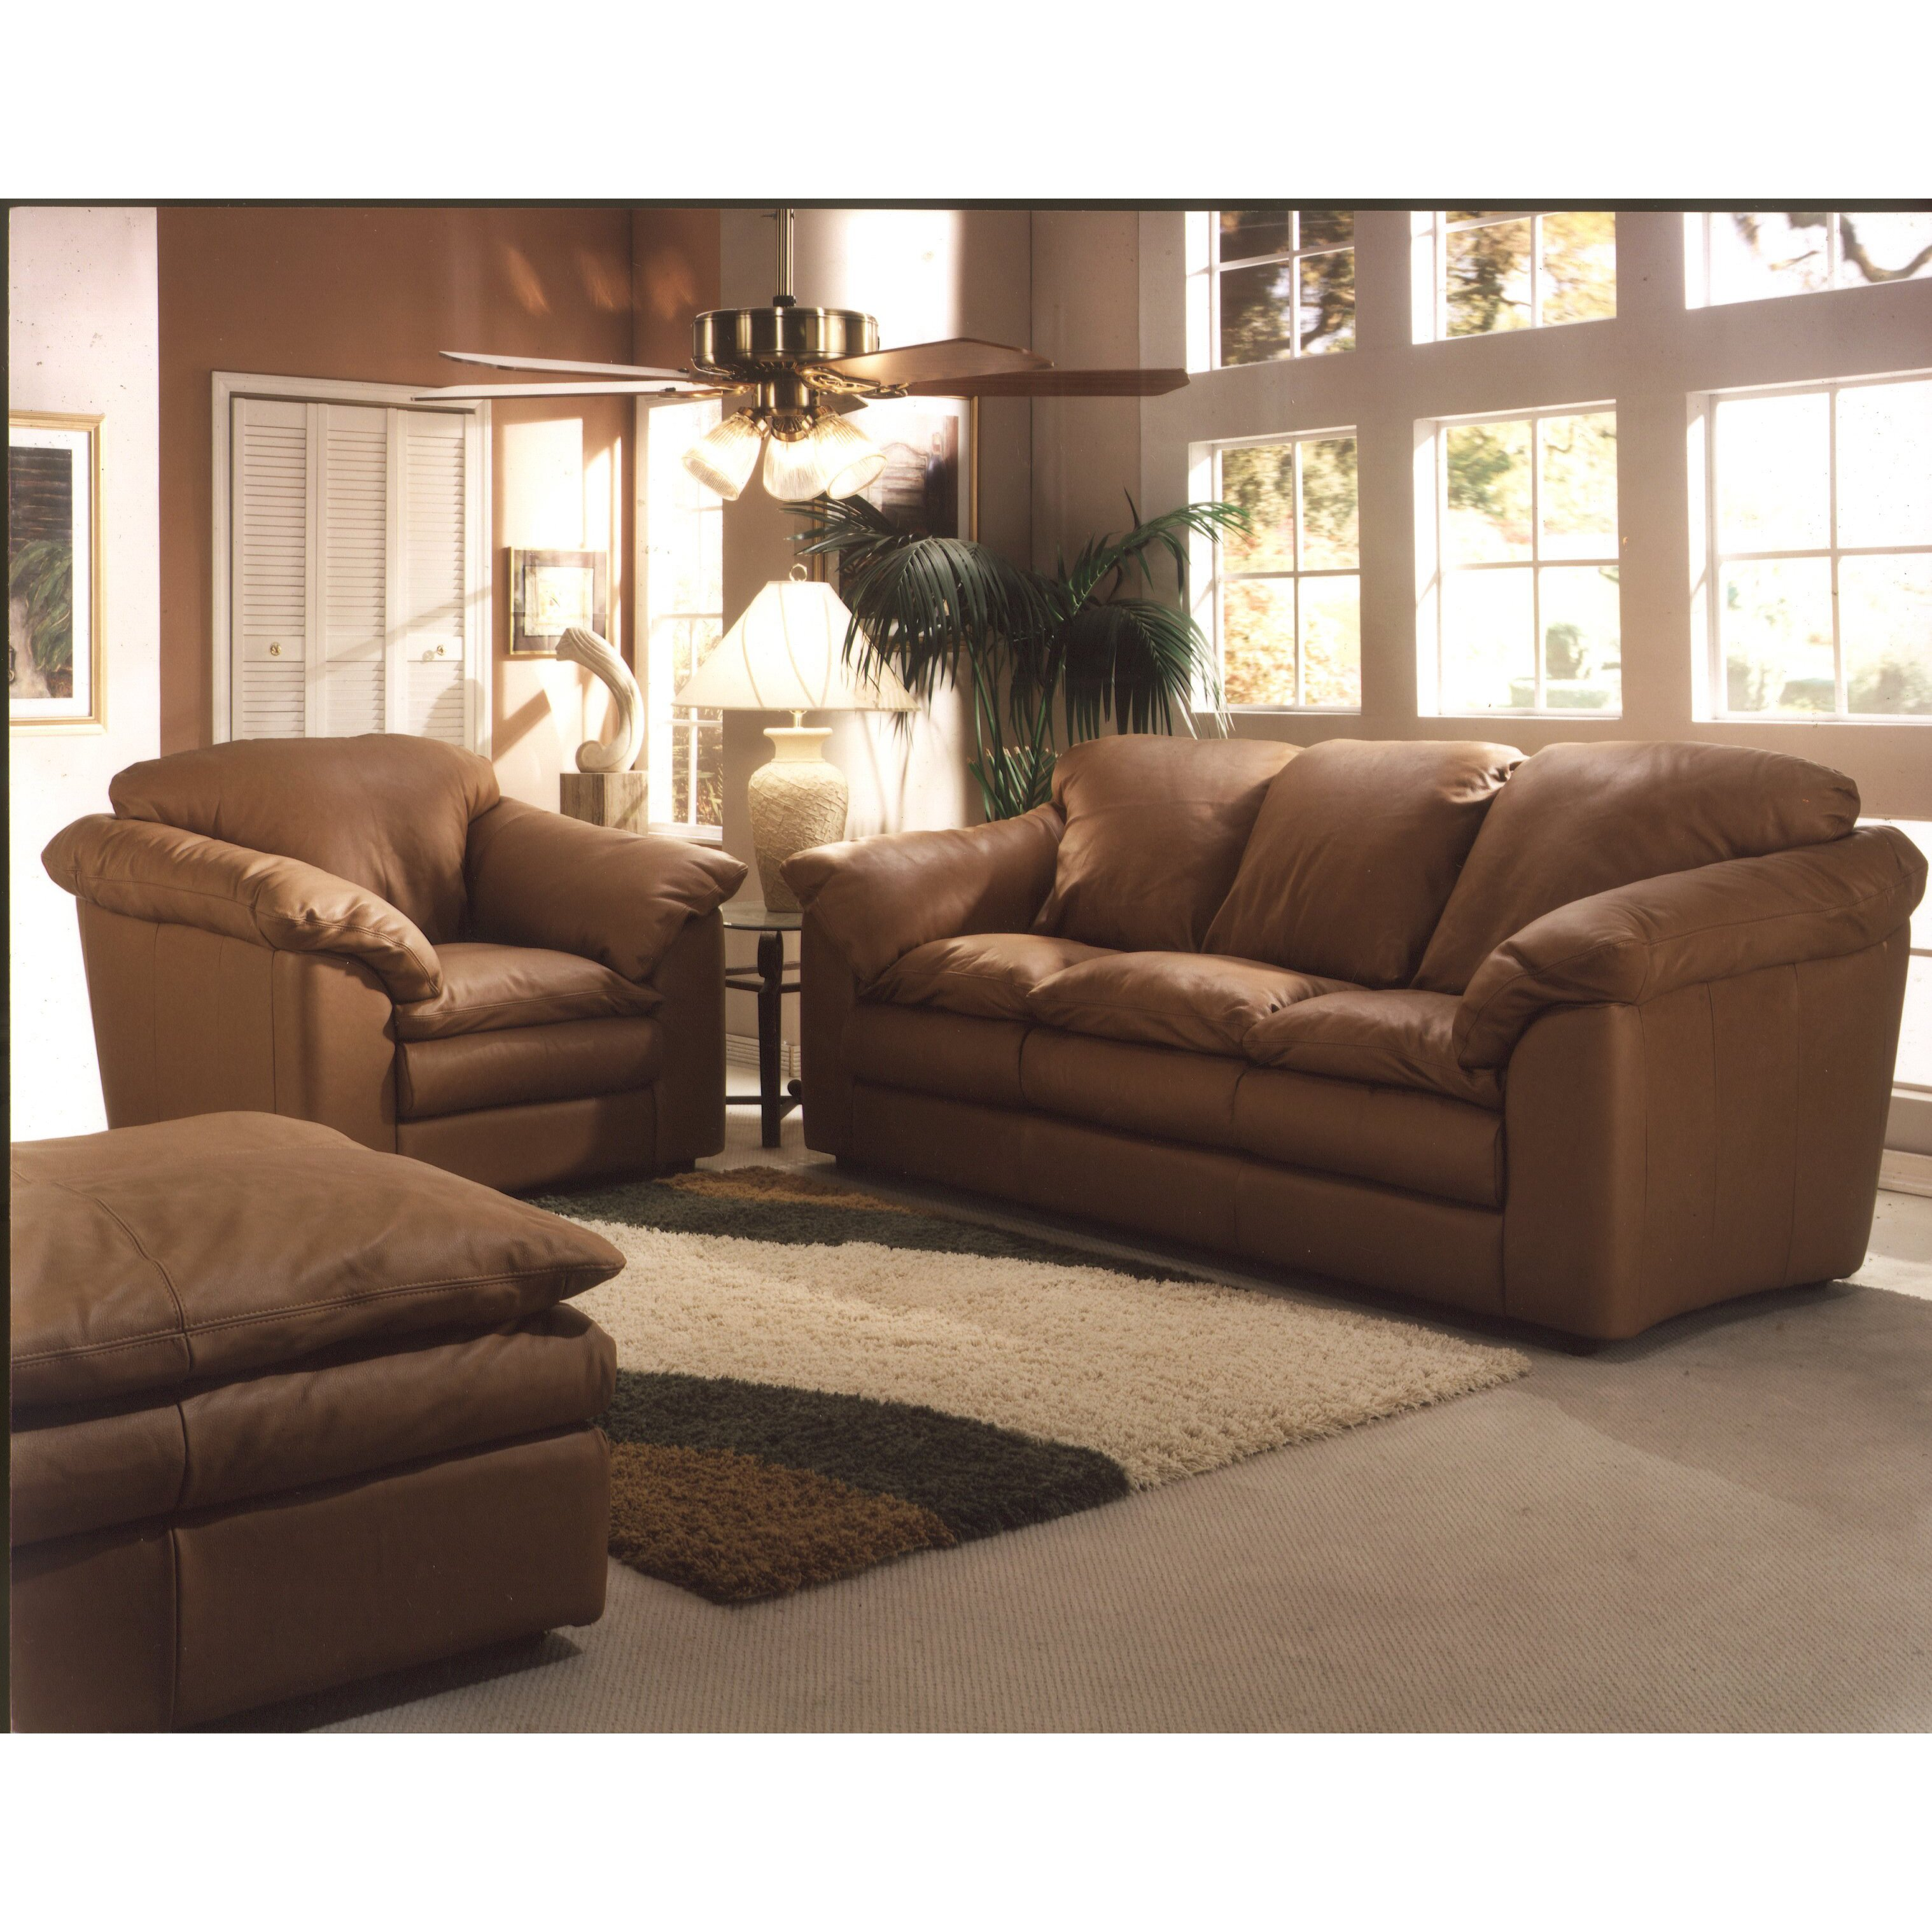 omnia leather oregon 3 seat leather living room set reviews wayfair. Black Bedroom Furniture Sets. Home Design Ideas